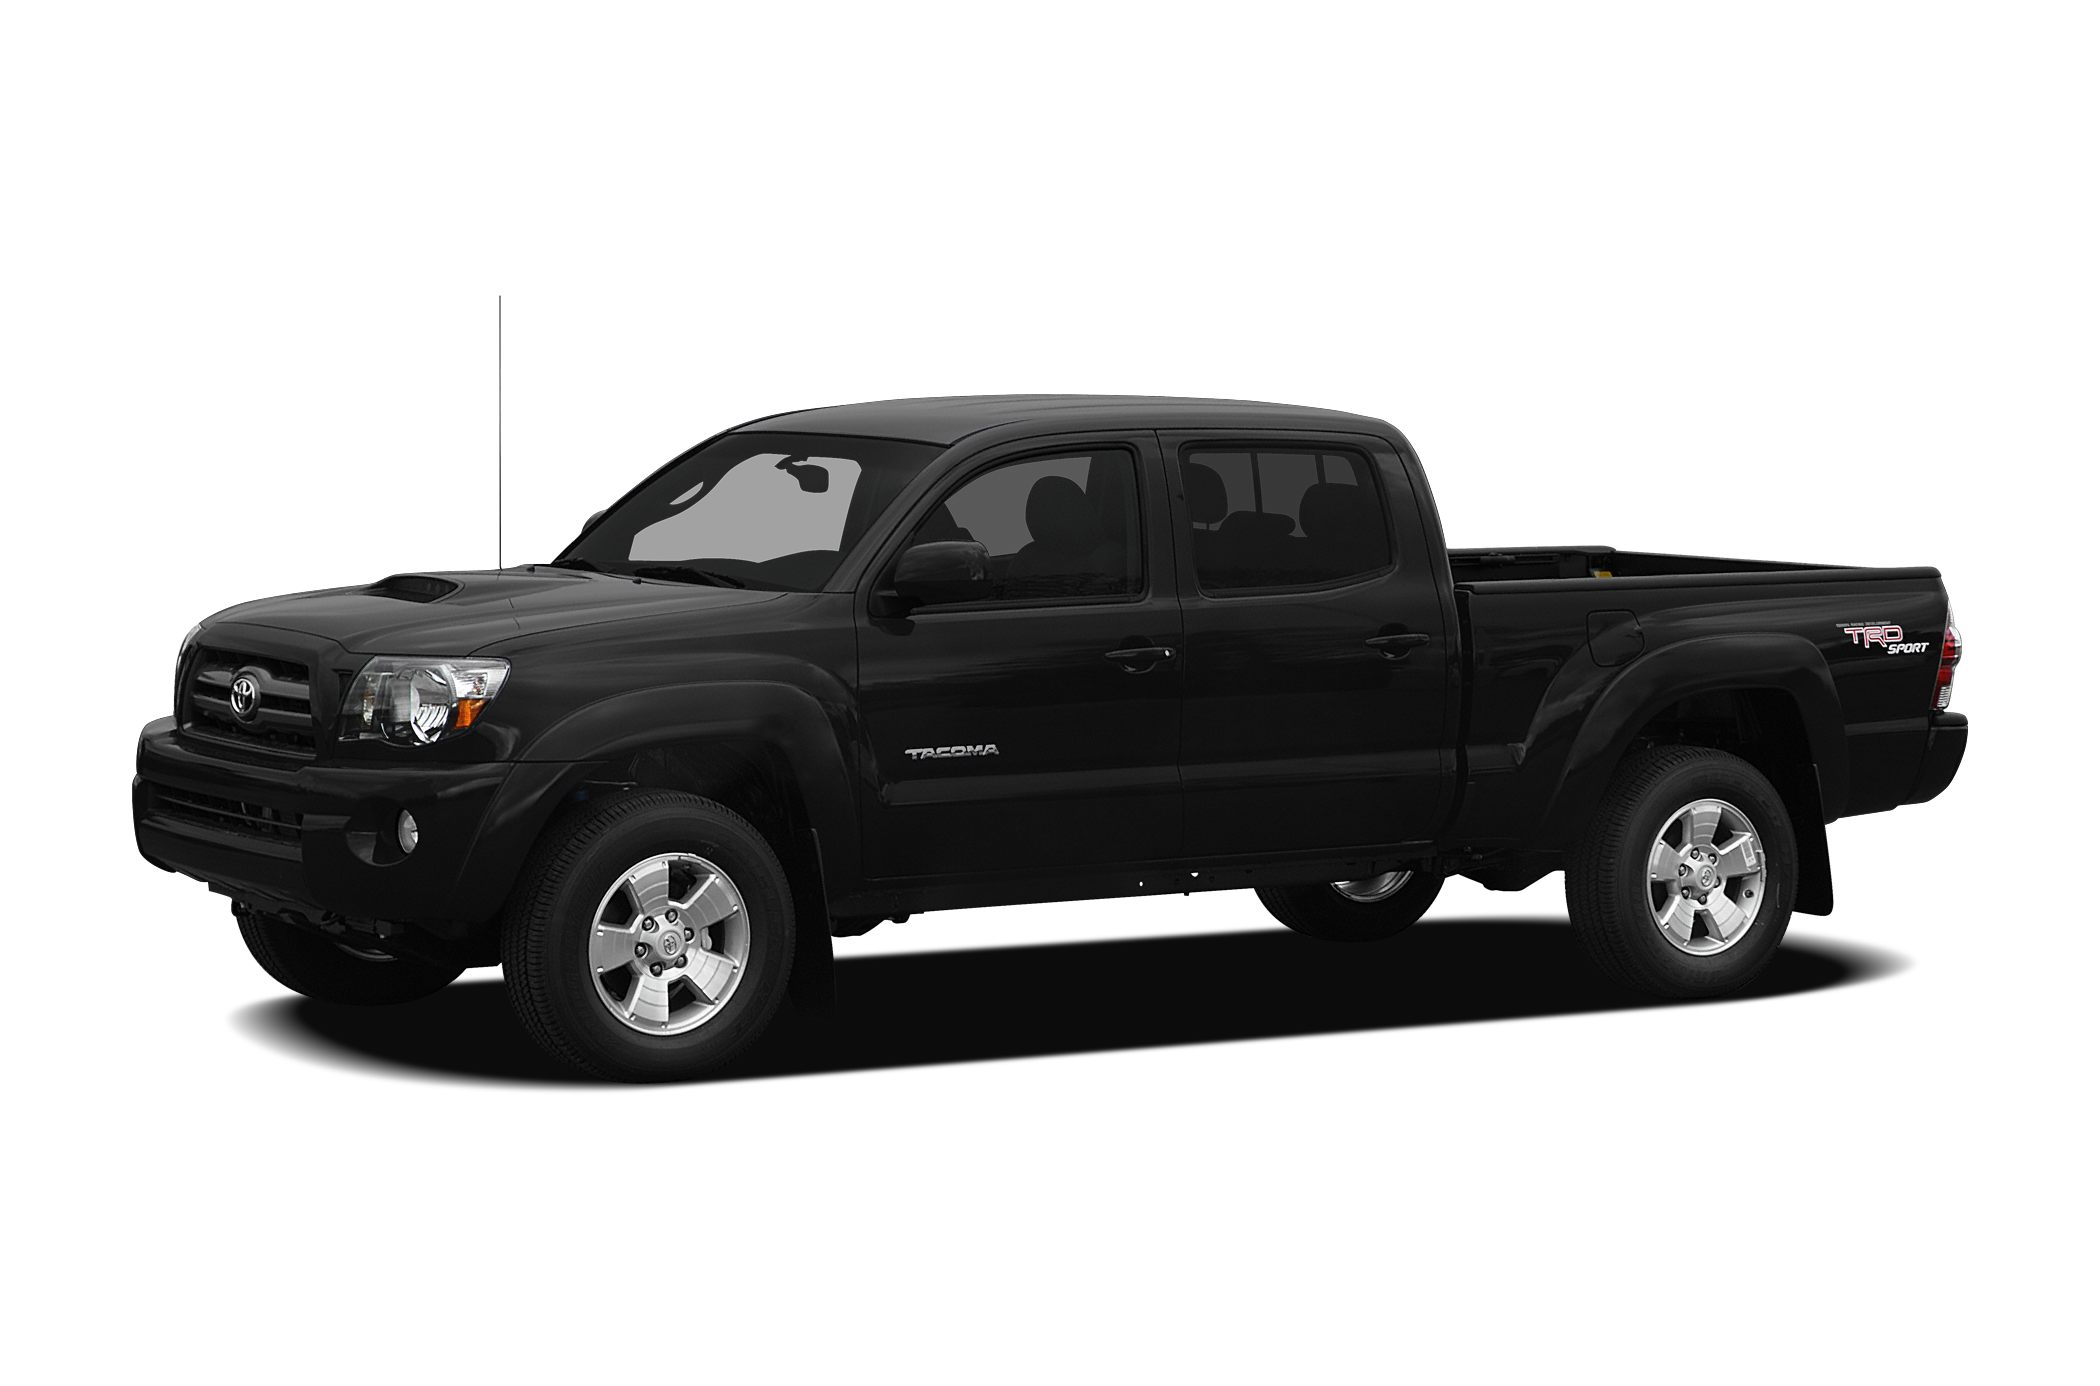 2009 Toyota Tacoma Base TACOMAS TACOMAS CERTIFIED PRE-OWNED BRING IT BACK GUARANTEE  24-MONTH2